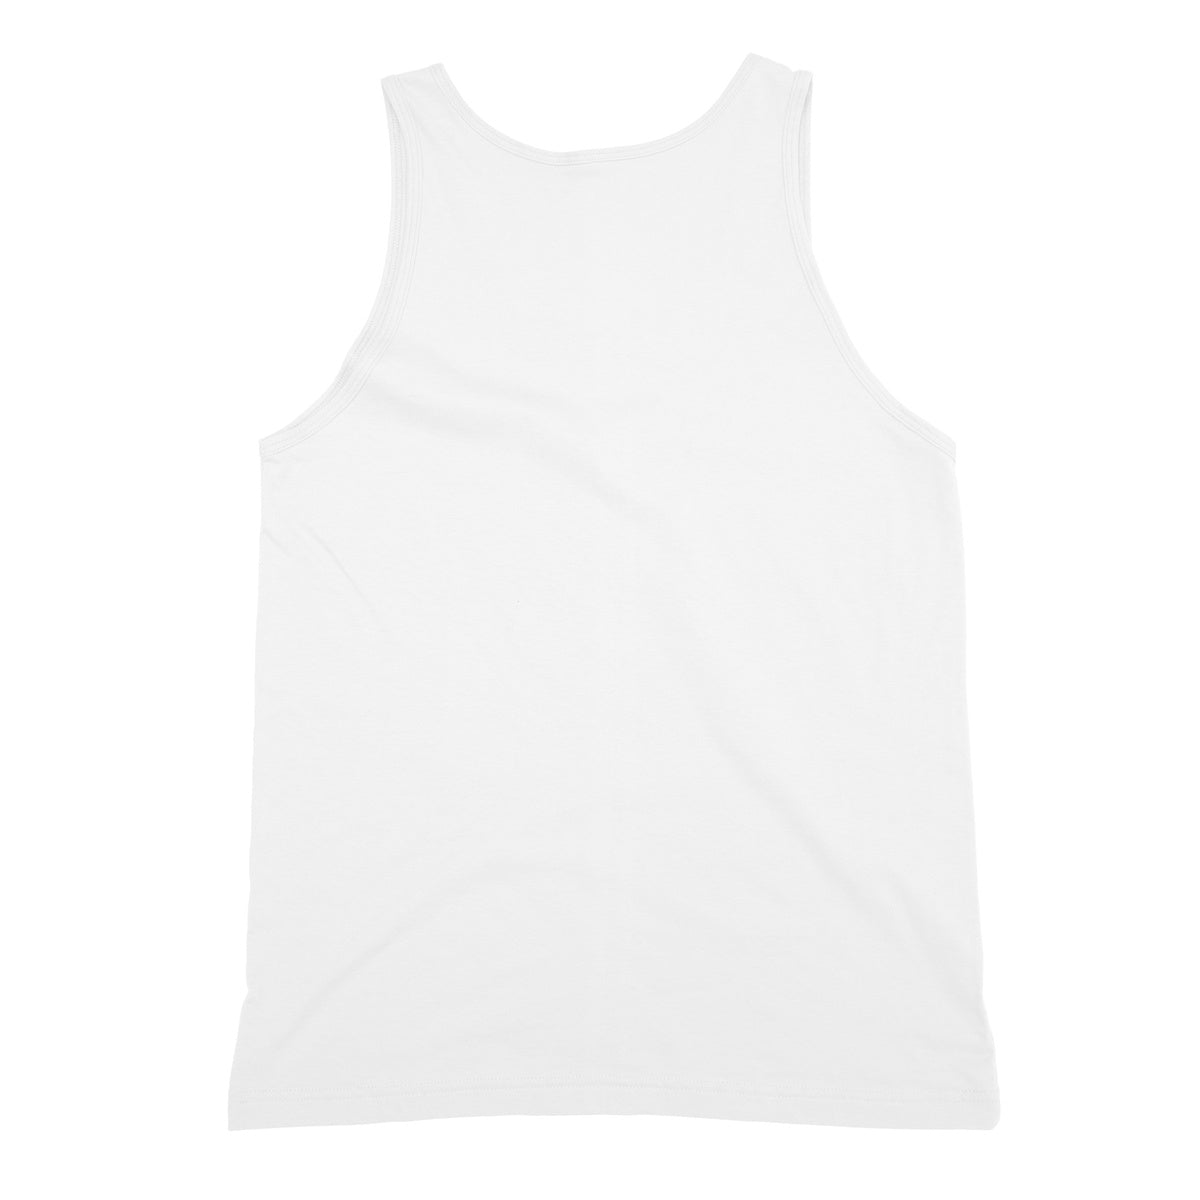 KLP White Background Logo Softstyle Tank Top